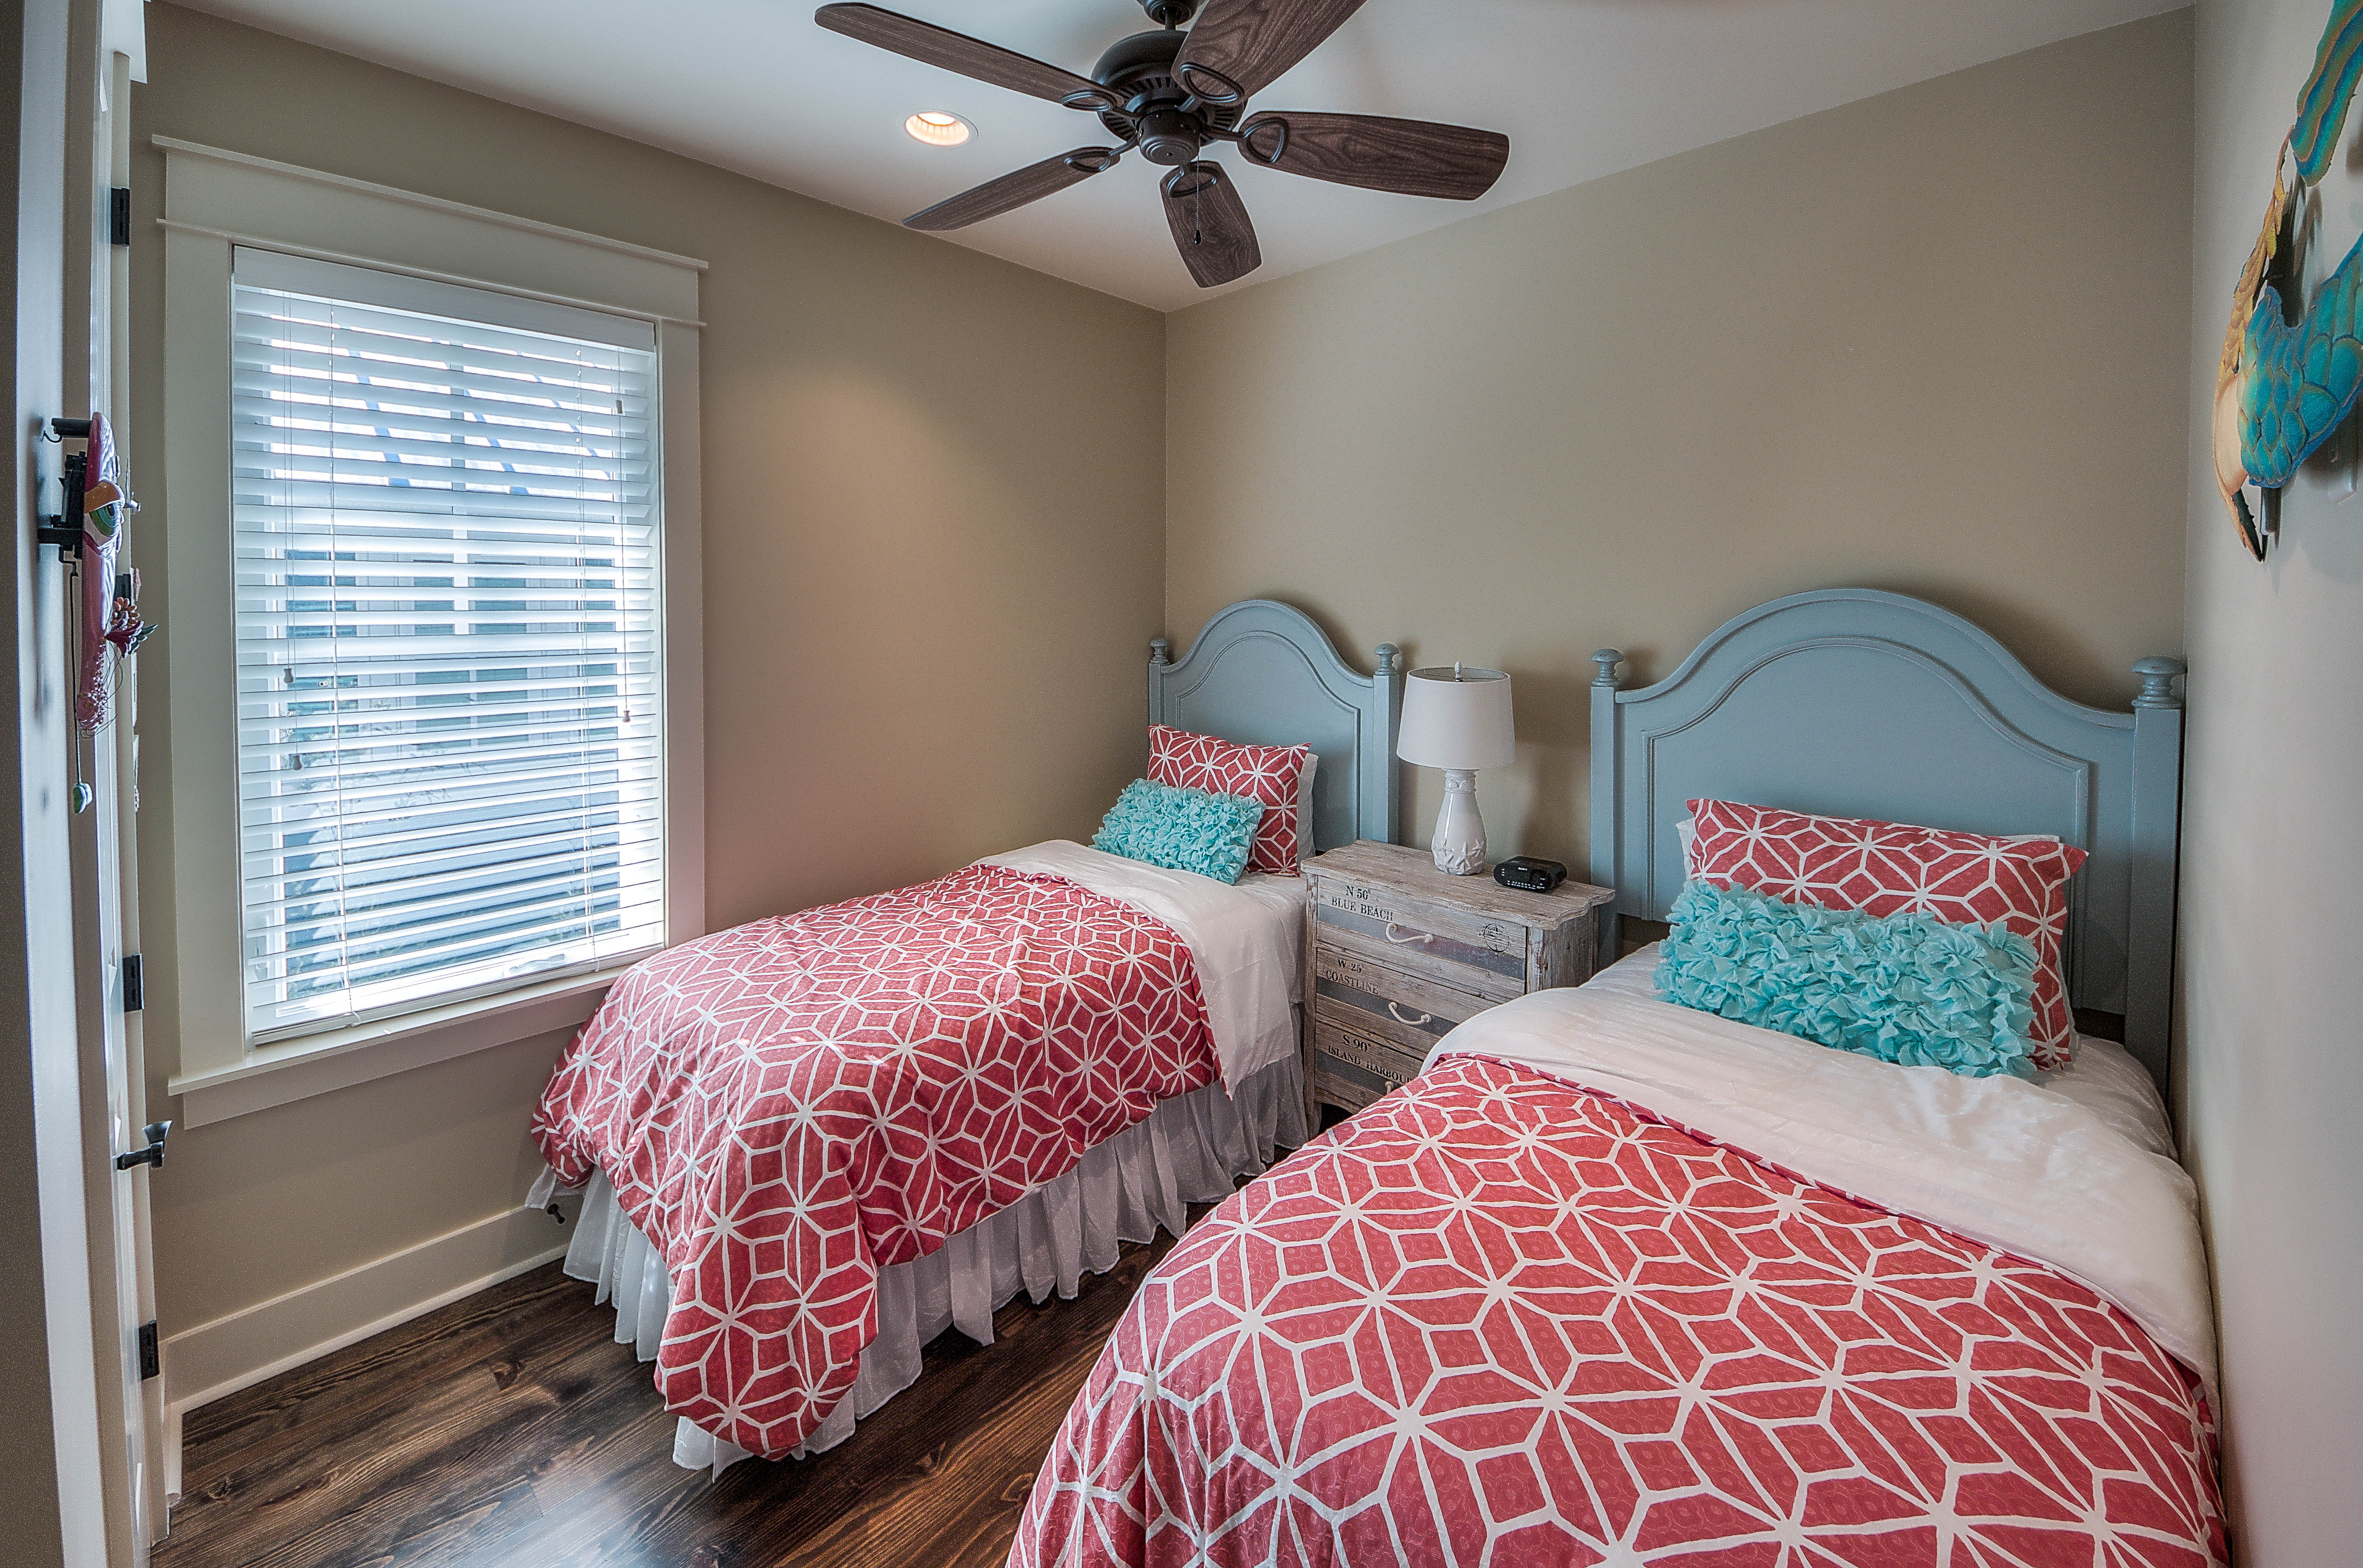 Adorable Twin bedroom at the top of stairs near seating area